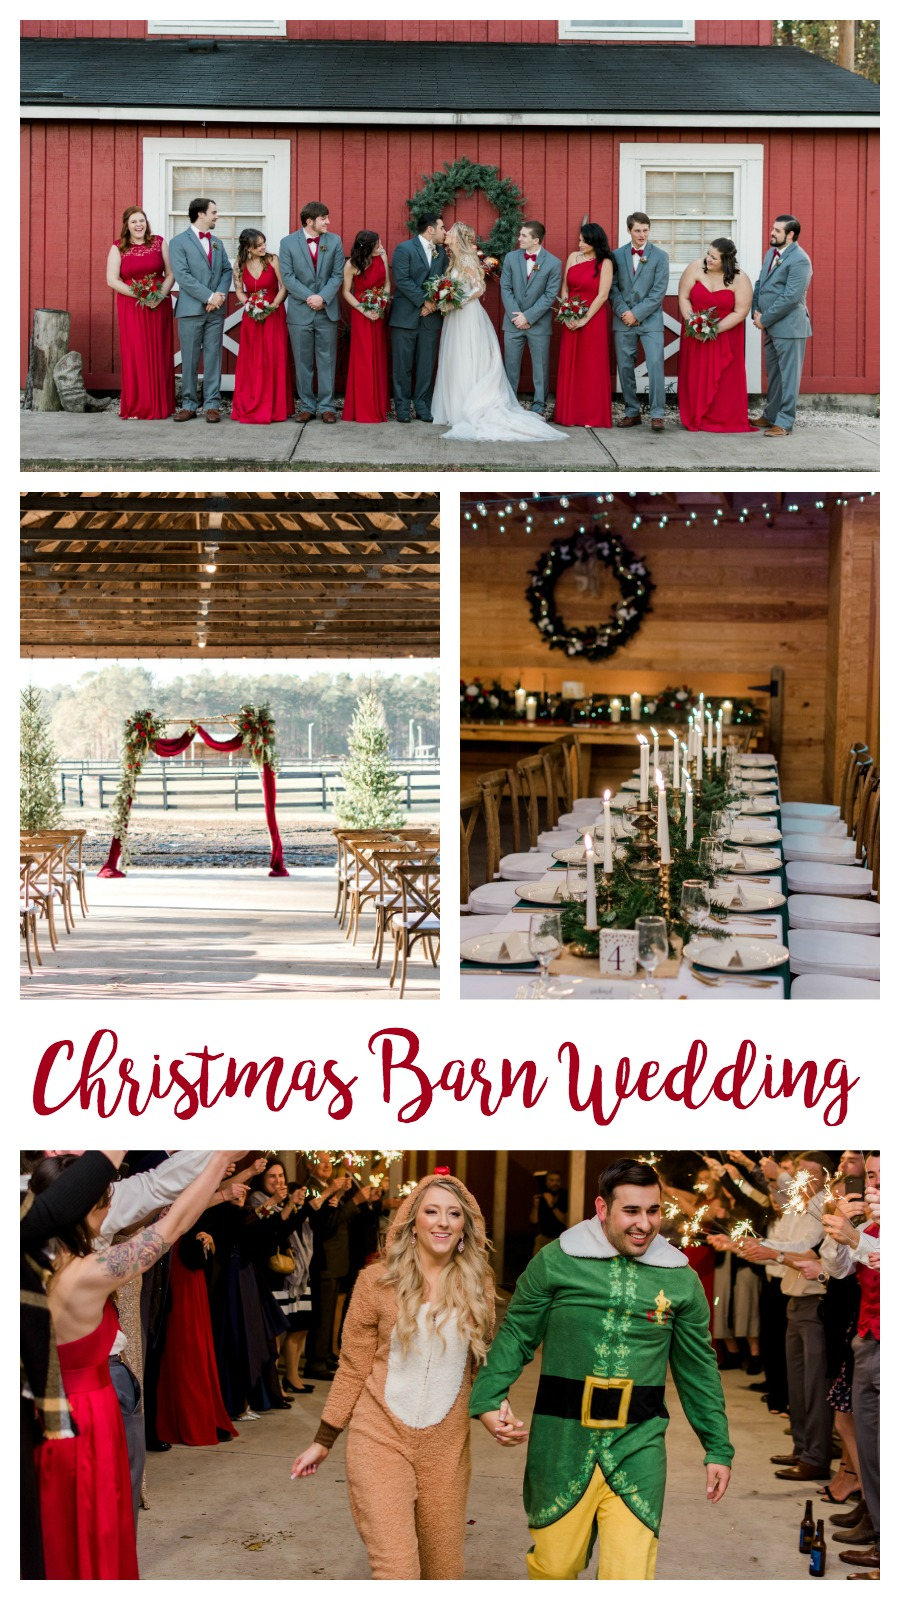 Kiley and Matthew: Elegant Christmas Wedding at Medicine Wind Farms, Summerville, South Carolina | Palmetto State Weddings | Kelsey Halm Photography | Christmas barn wedding | cute wedding outfits | red and gold wedding